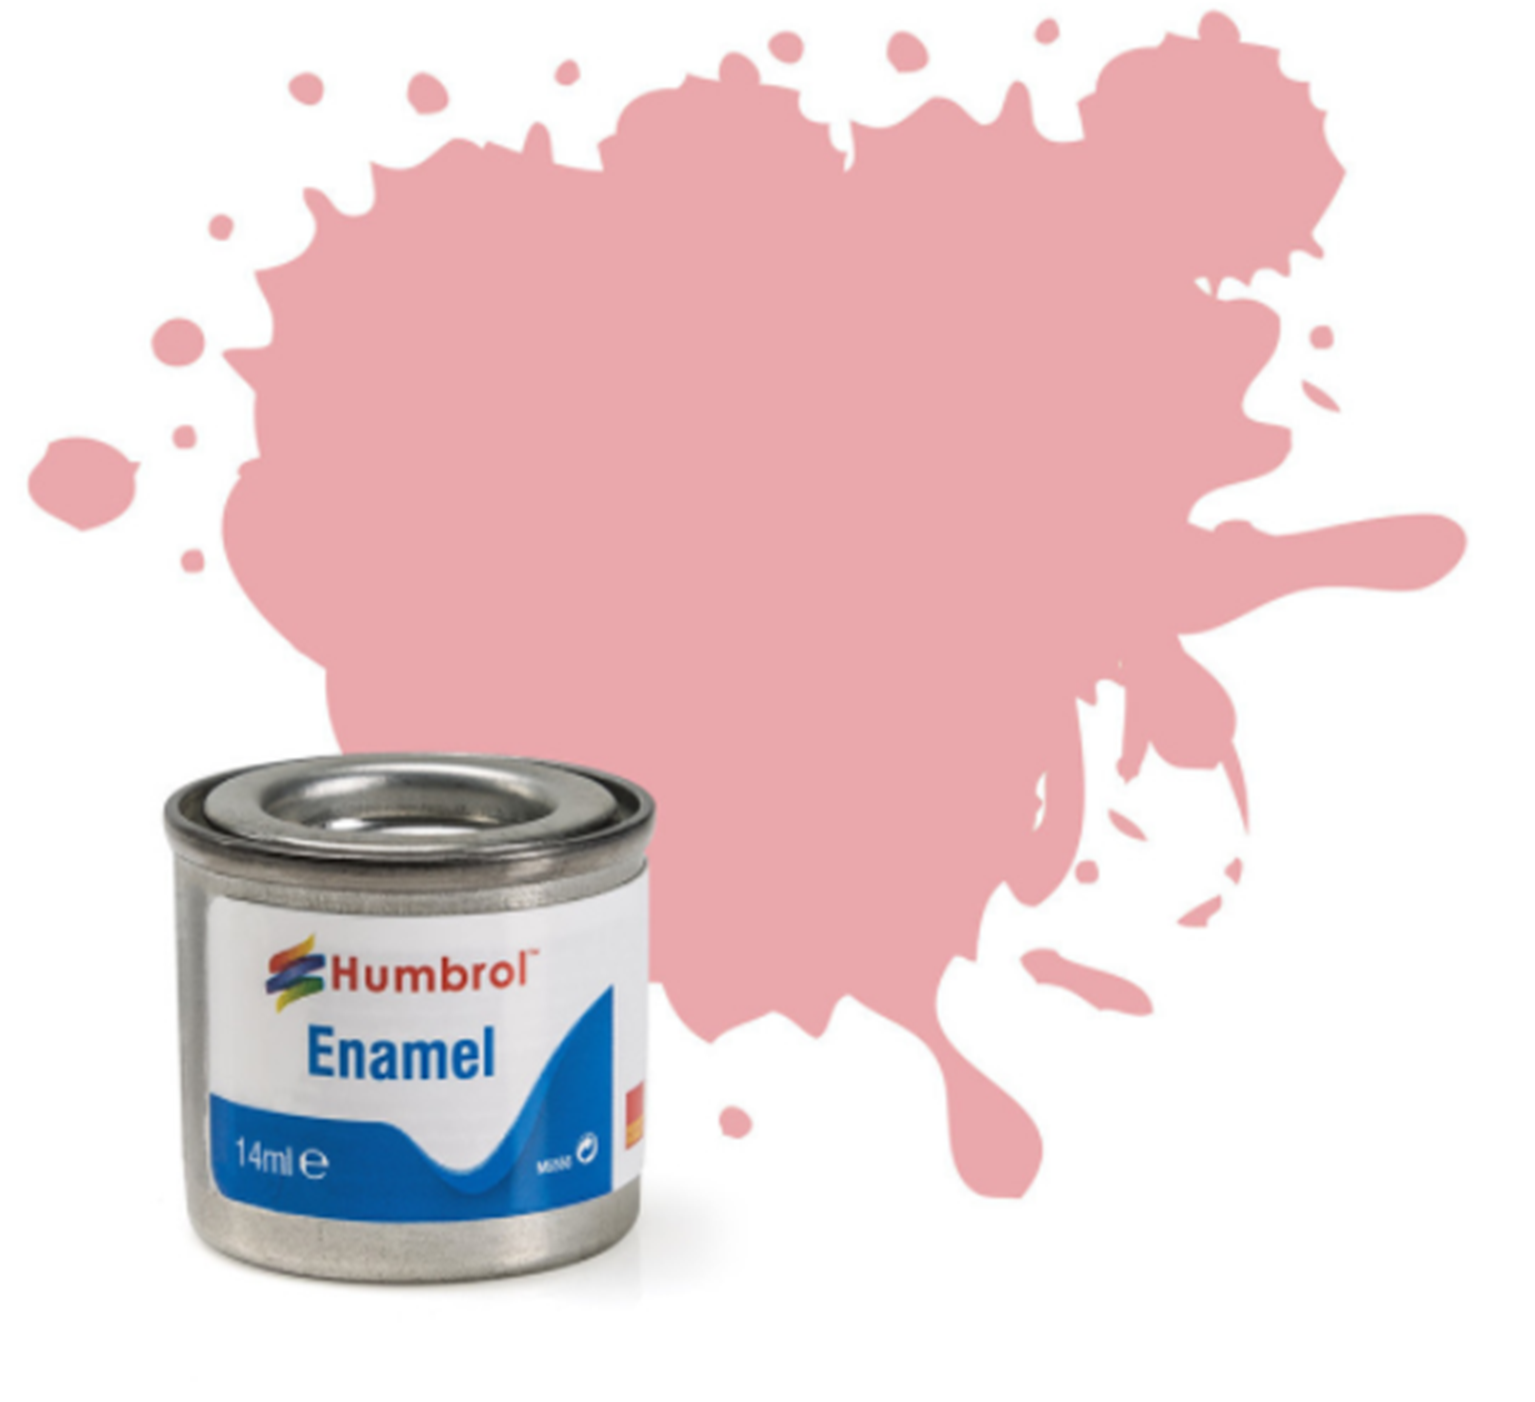 No 200 Pink Gloss Enamel Paint (14ml)